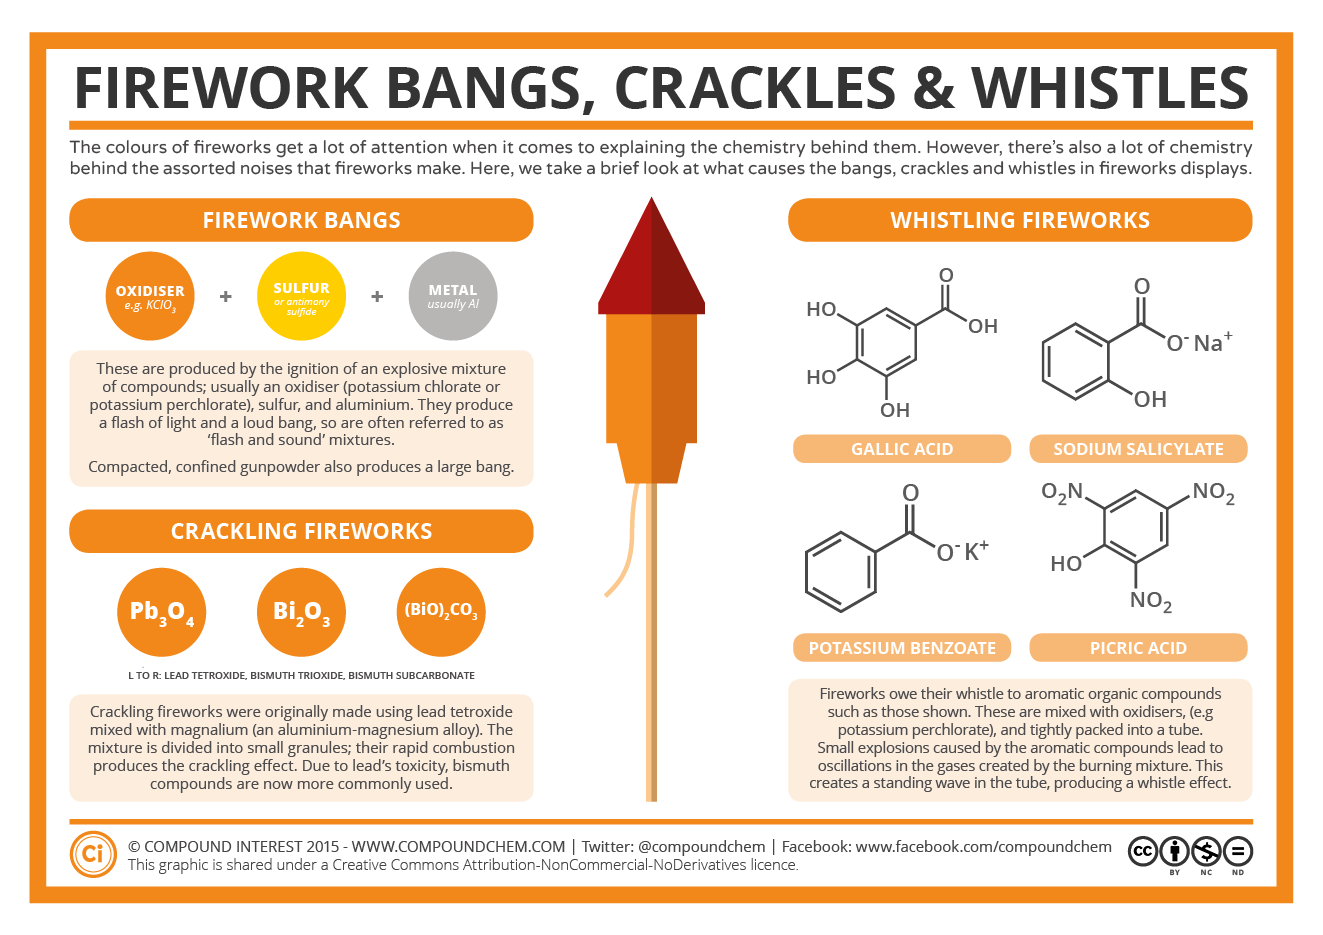 The Chemistry of Fireworks: Bangs, Crackles & Whistles | Compound